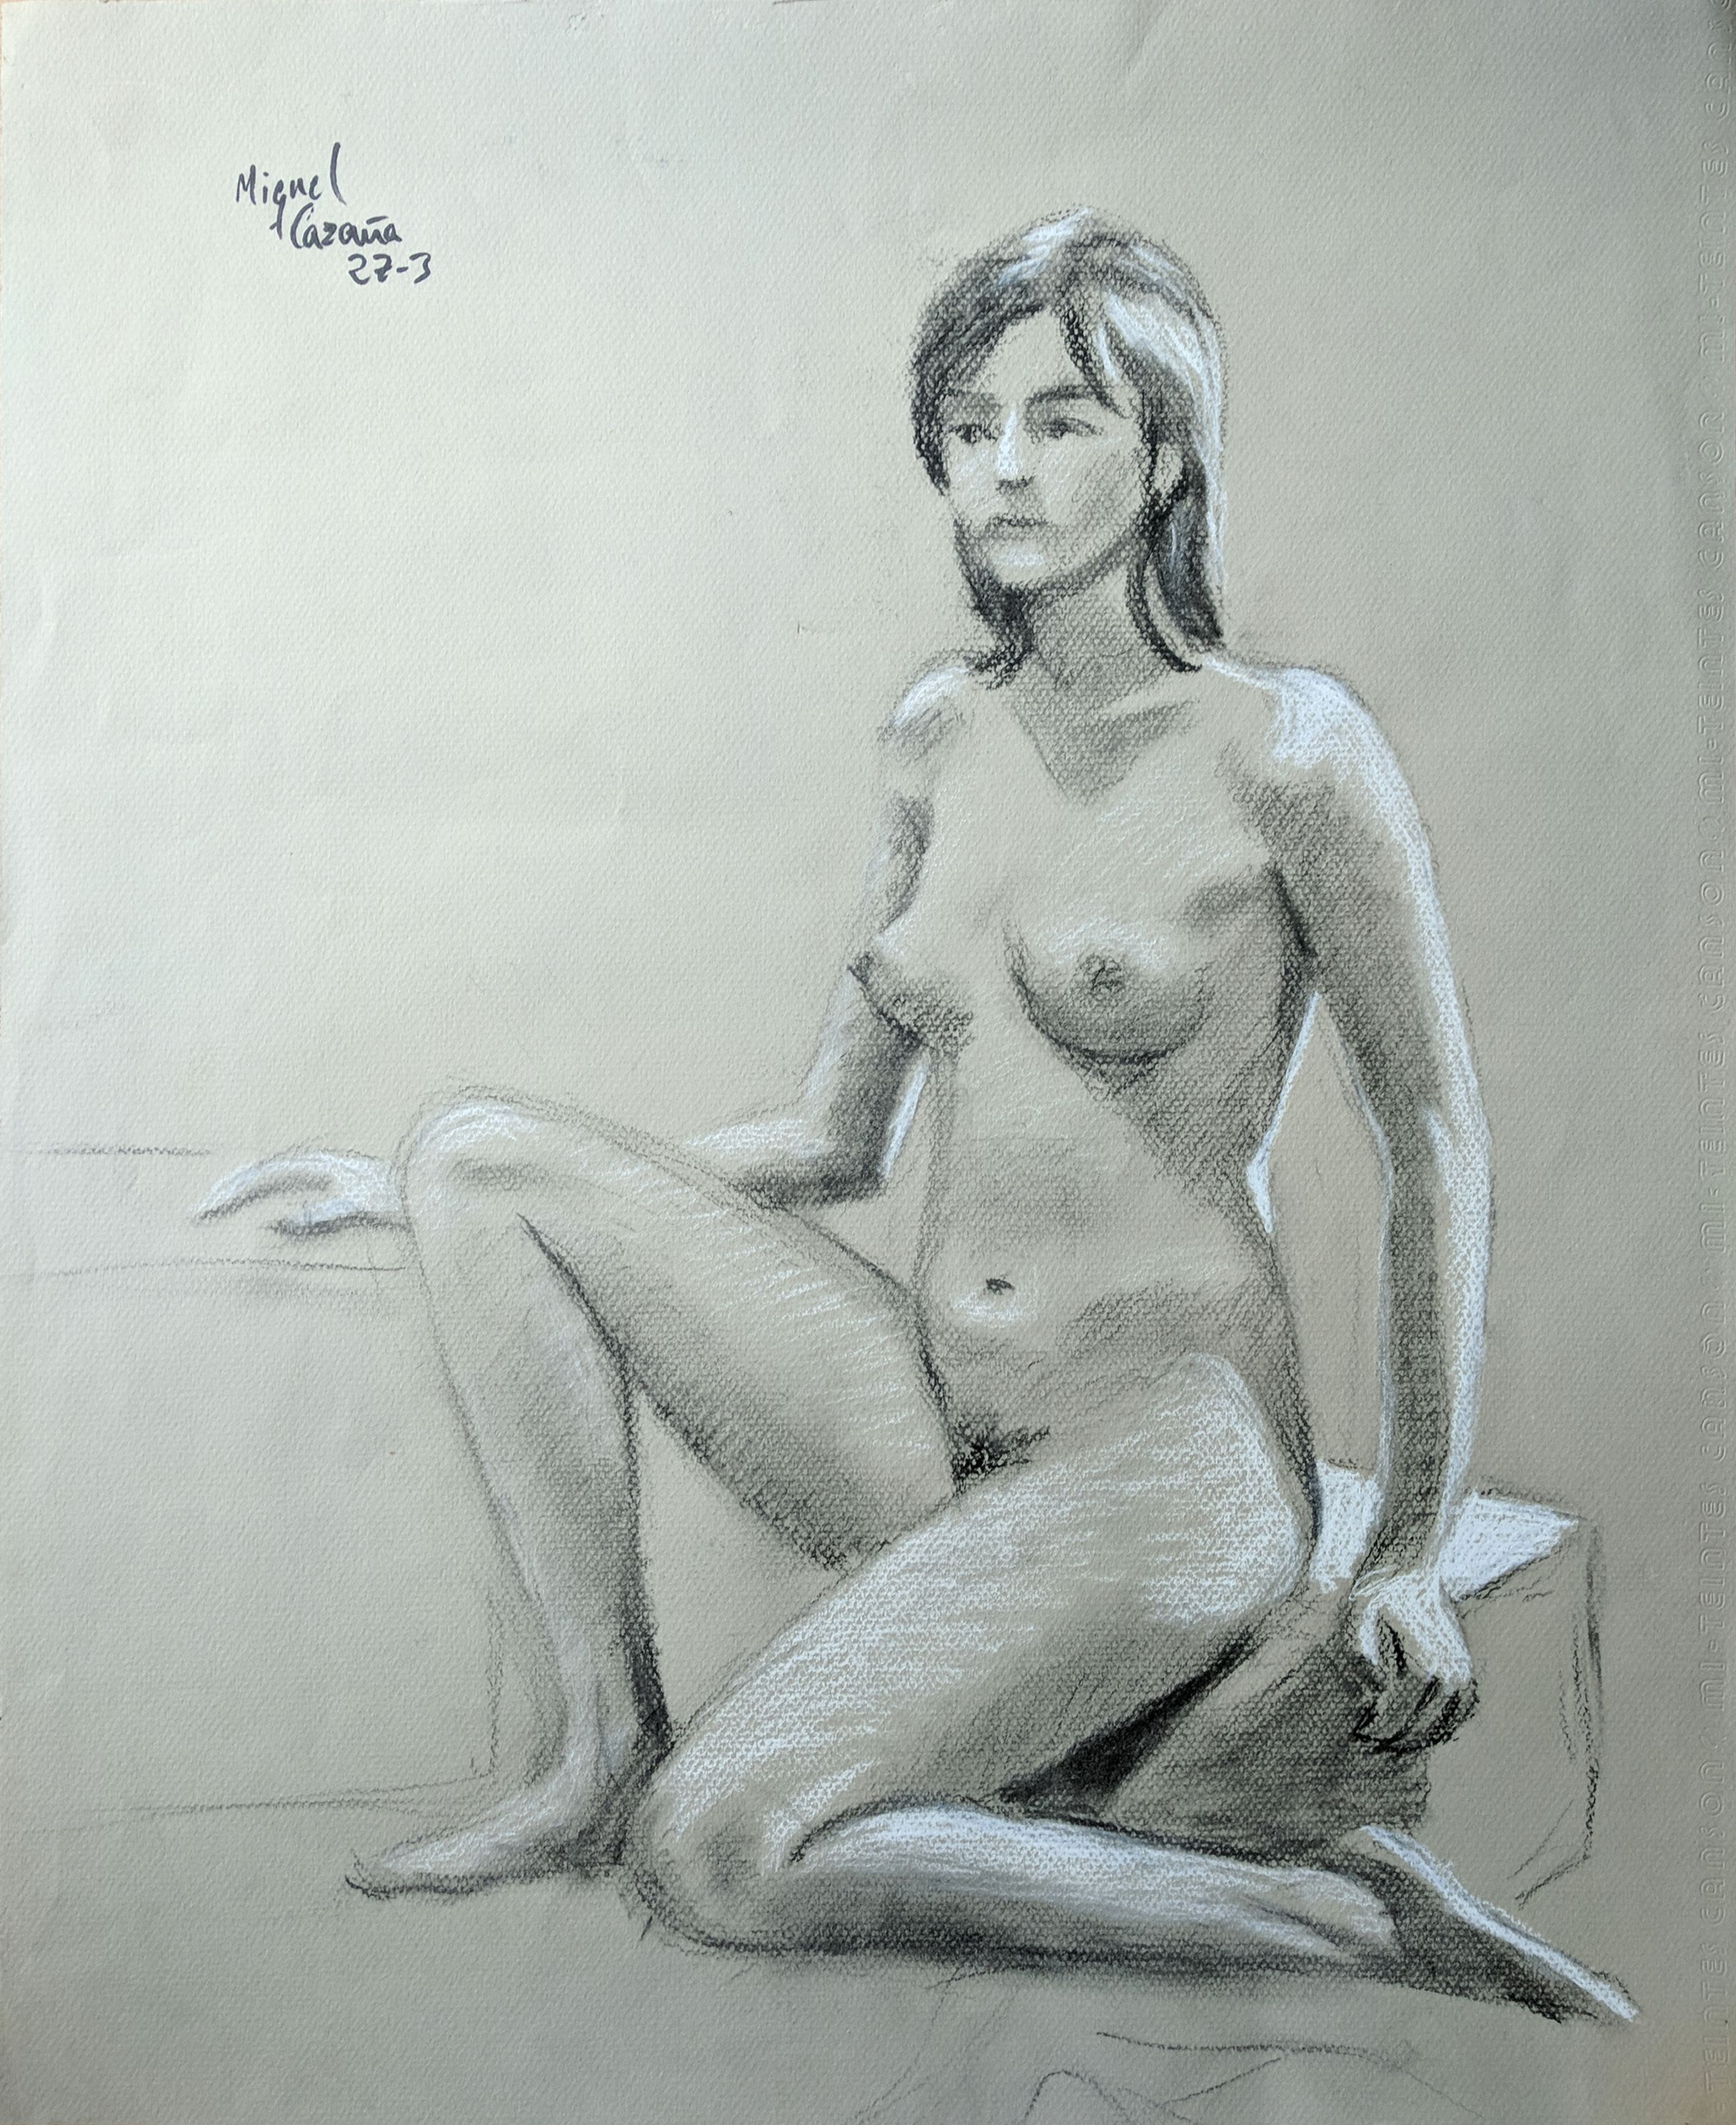 Naked woman. Original drawings online